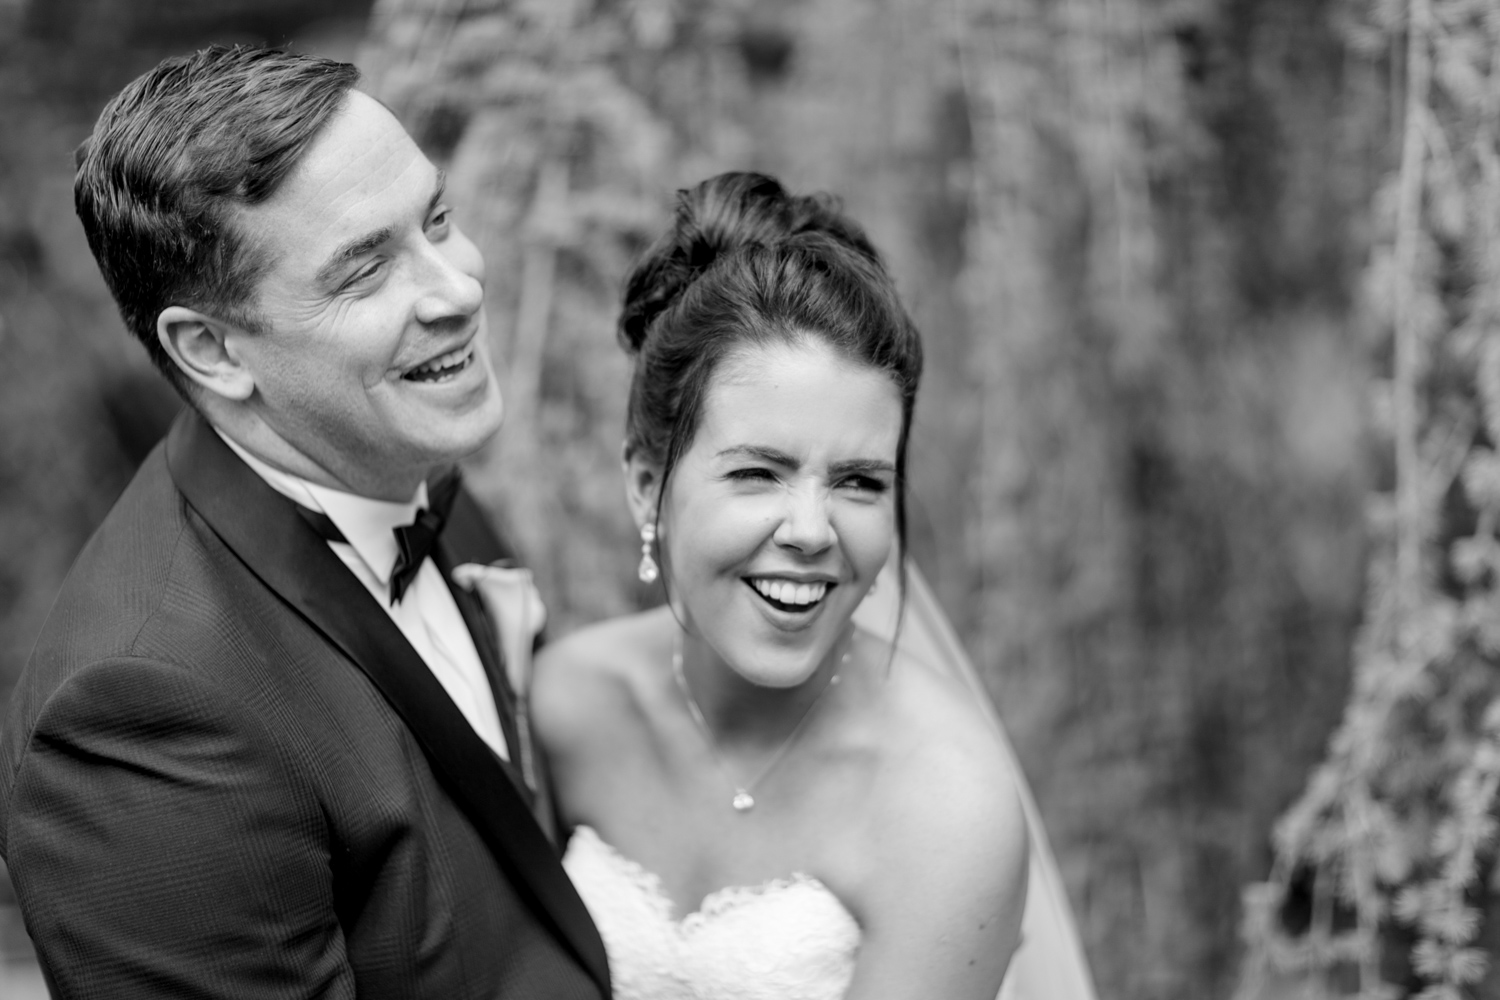 bride and groom energetically smiling into the camera groom wearing a black tux and bride wearing an off shoulder wedding dress